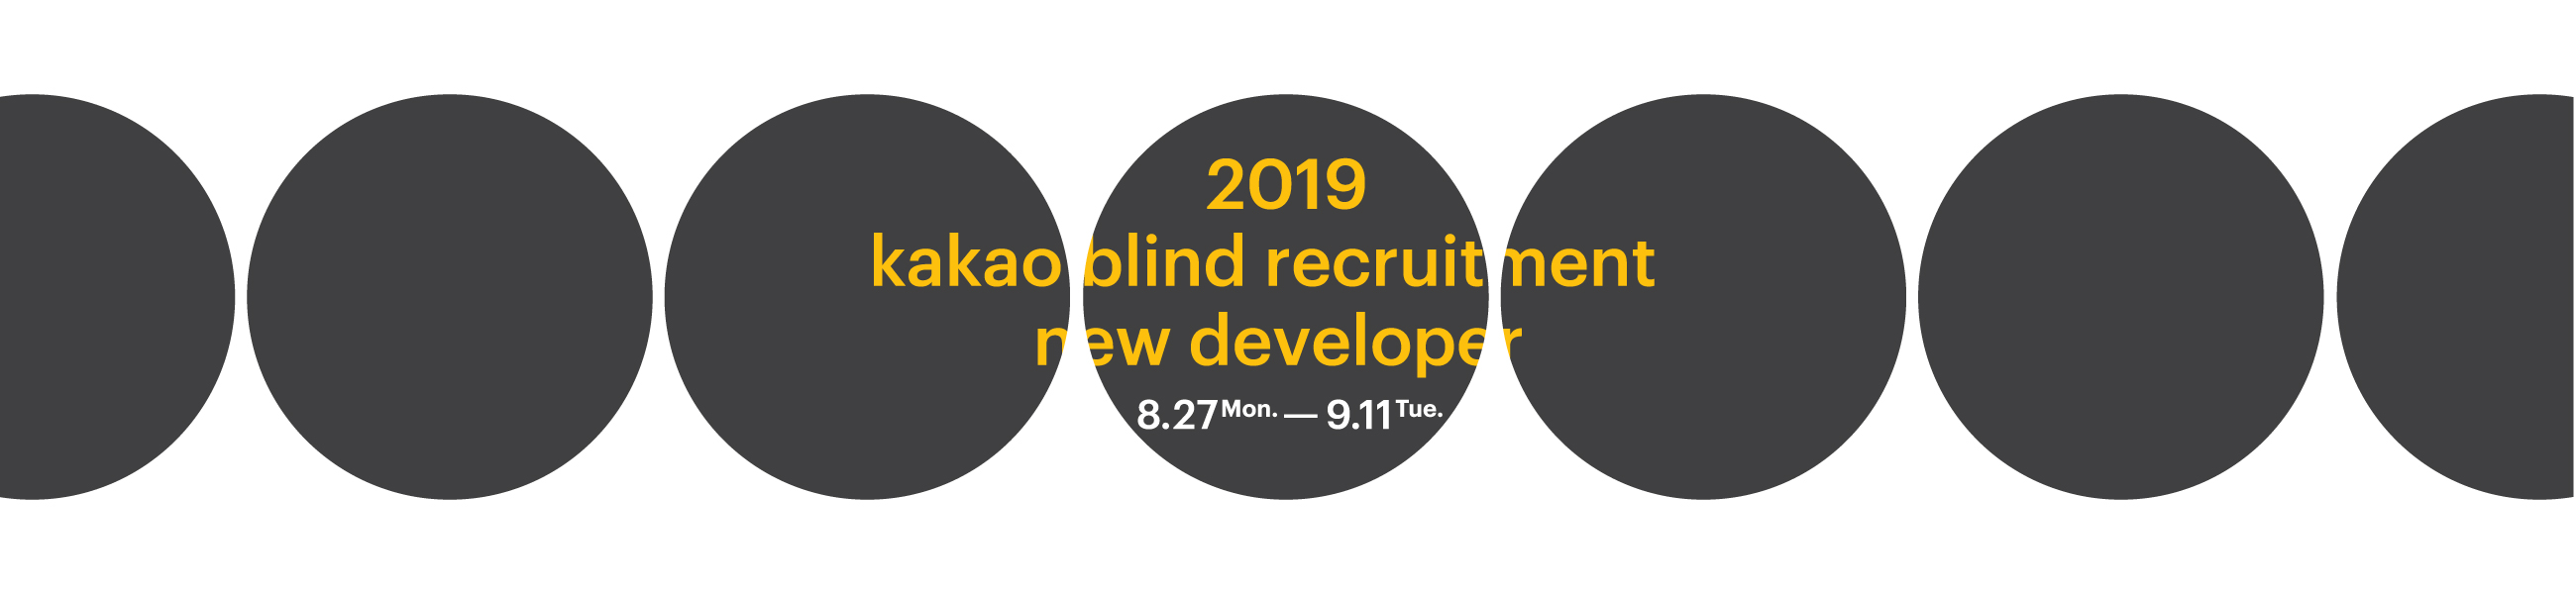 2019 KAKAO BLIND RECRUITMENT의 이미지